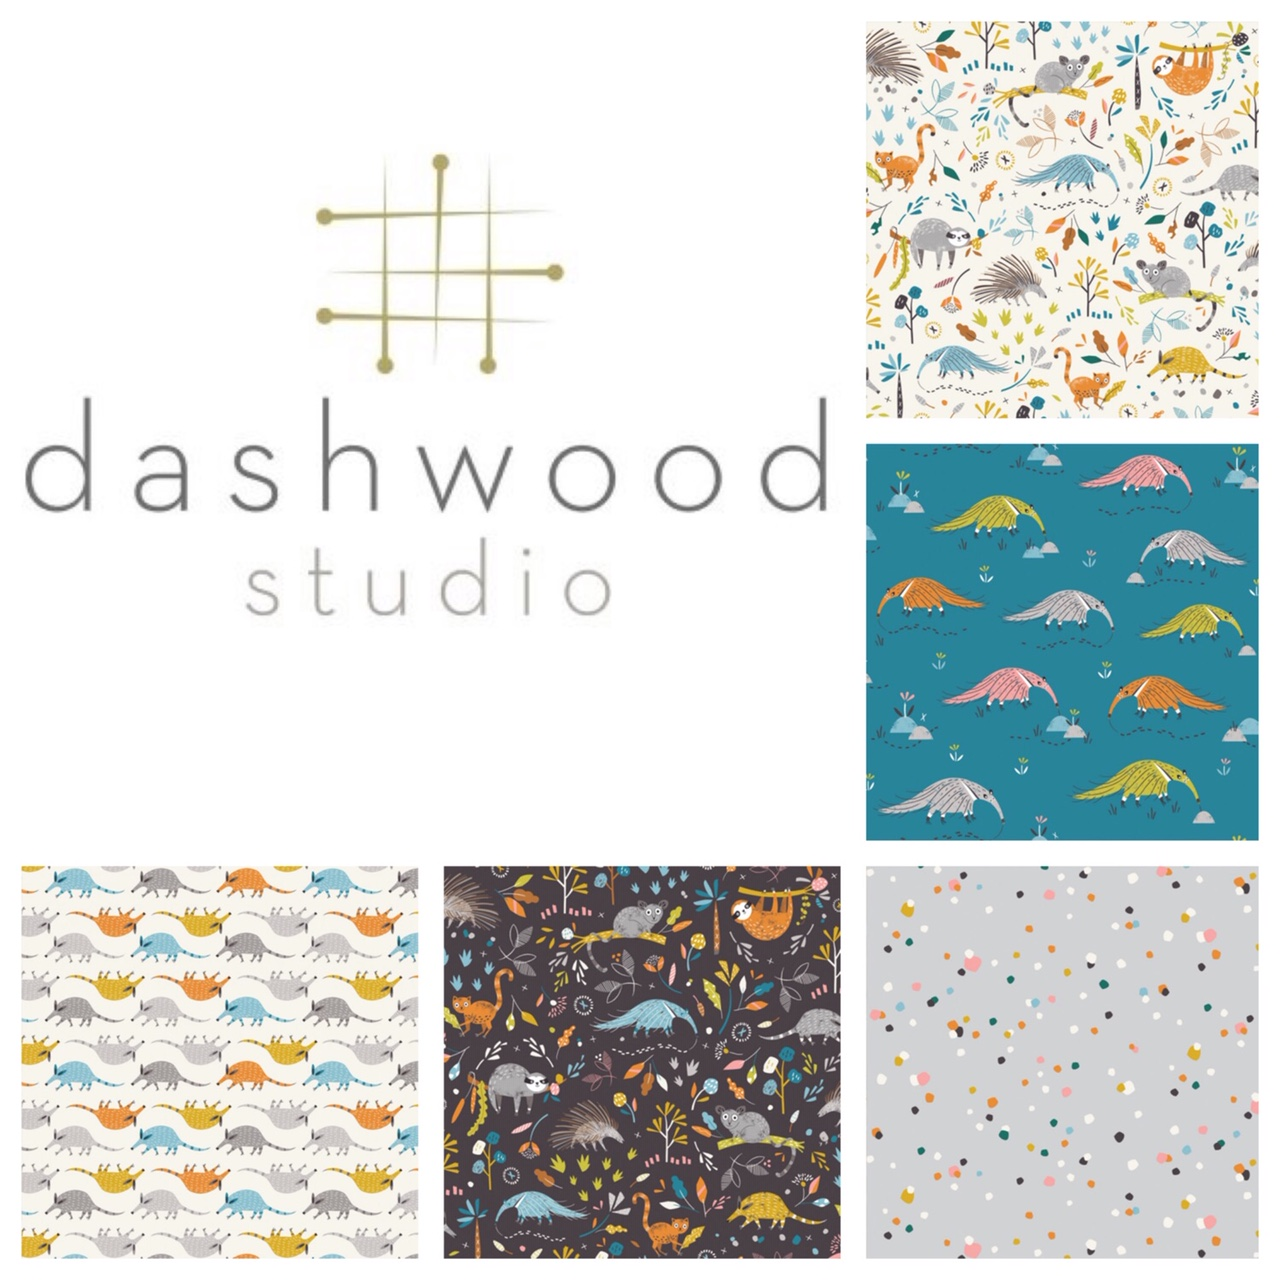 Dashwood studio hanging around